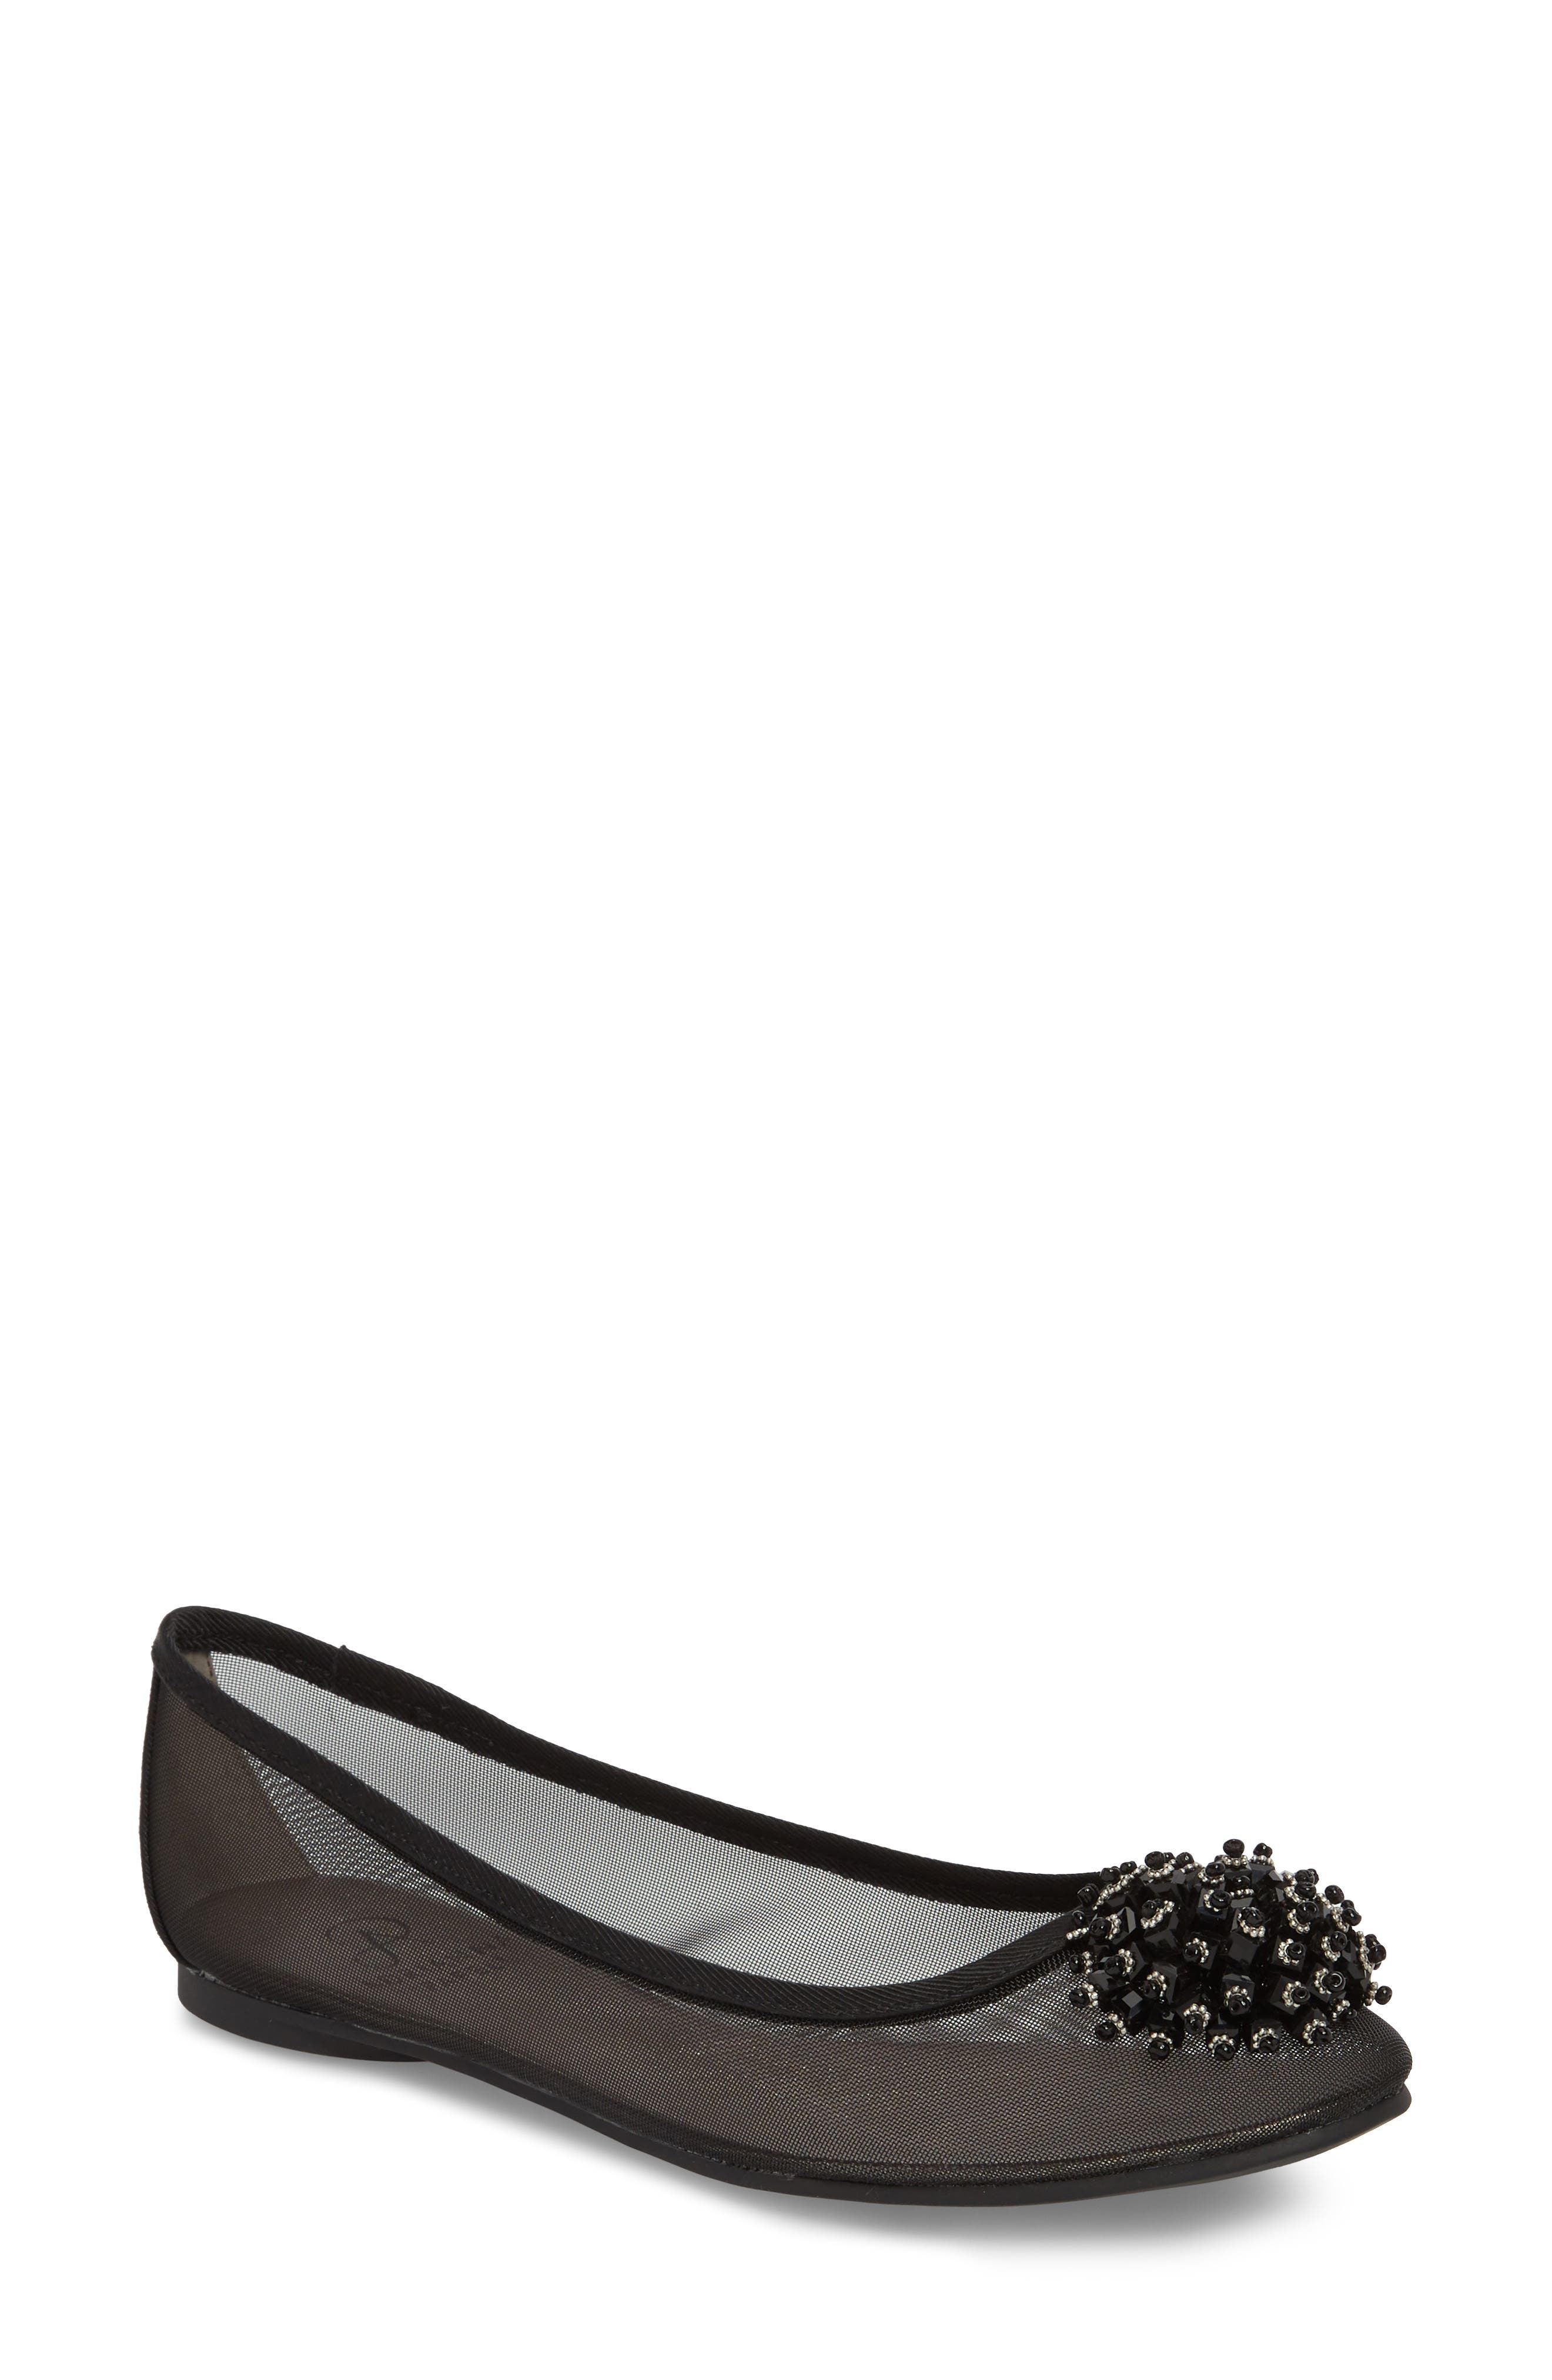 ADRIANNA PAPELL,                             Stevie Embellished Flat,                             Main thumbnail 1, color,                             001